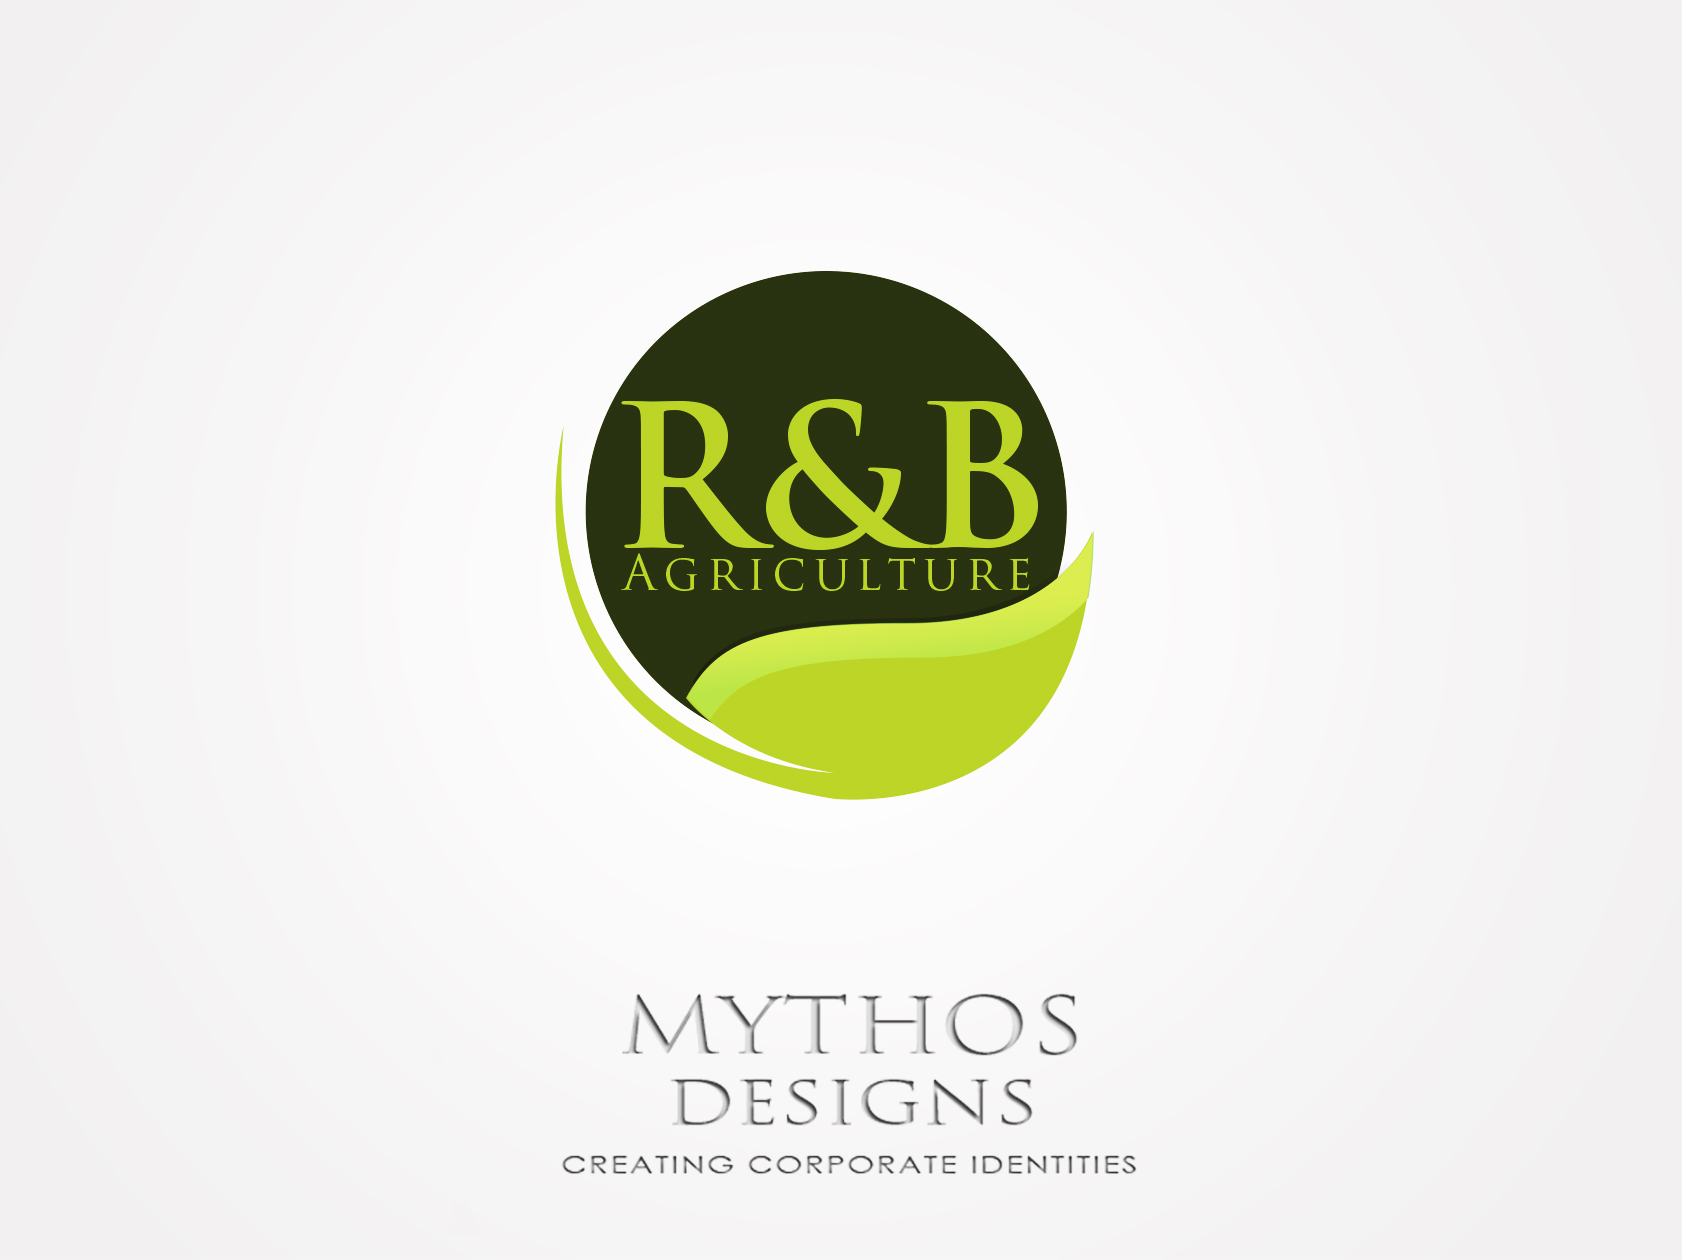 Logo Design by Mythos Designs - Entry No. 105 in the Logo Design Contest Captivating Logo Design for R & B Agriculture.